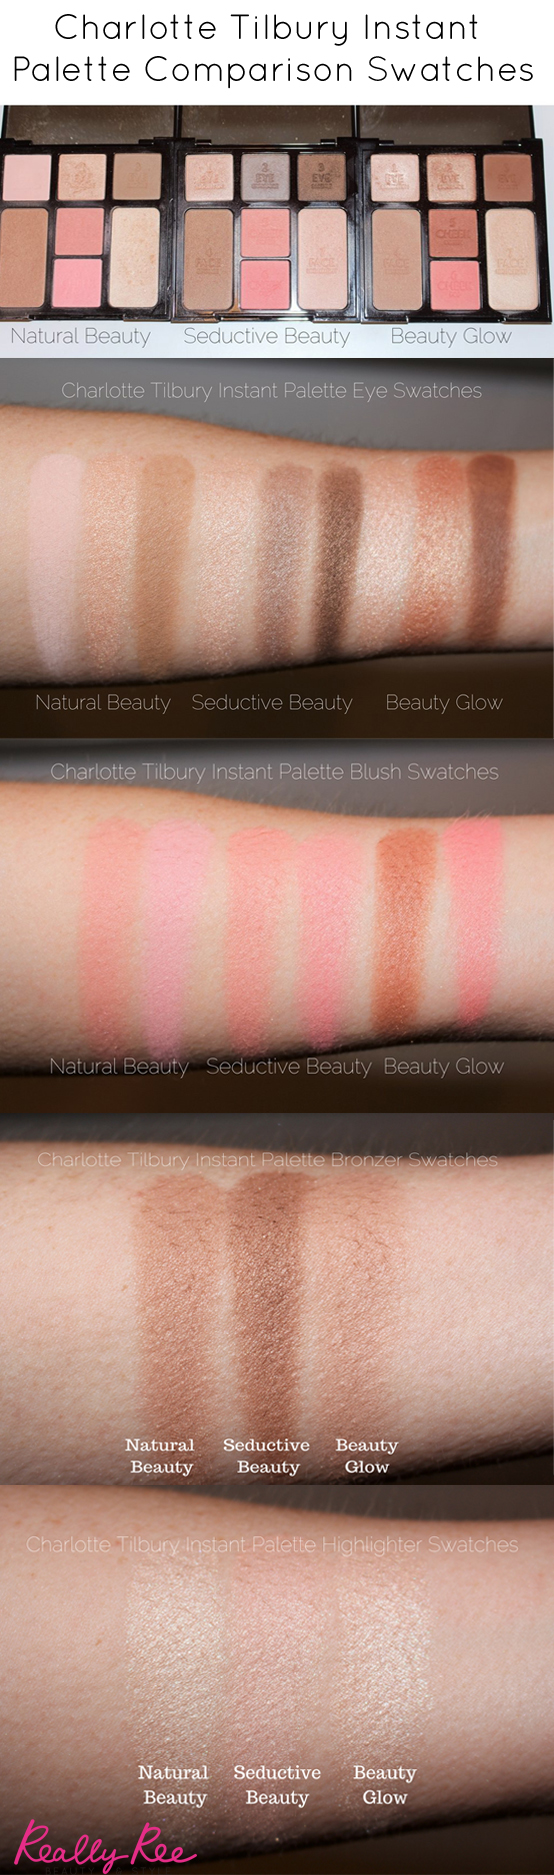 Charlotte Tilbury Instant Palette Comparison Swatches - Natural Beauty, Seductive Beauty, Beauty Glow -Click through to see the full comparison swatches and read the reviews.